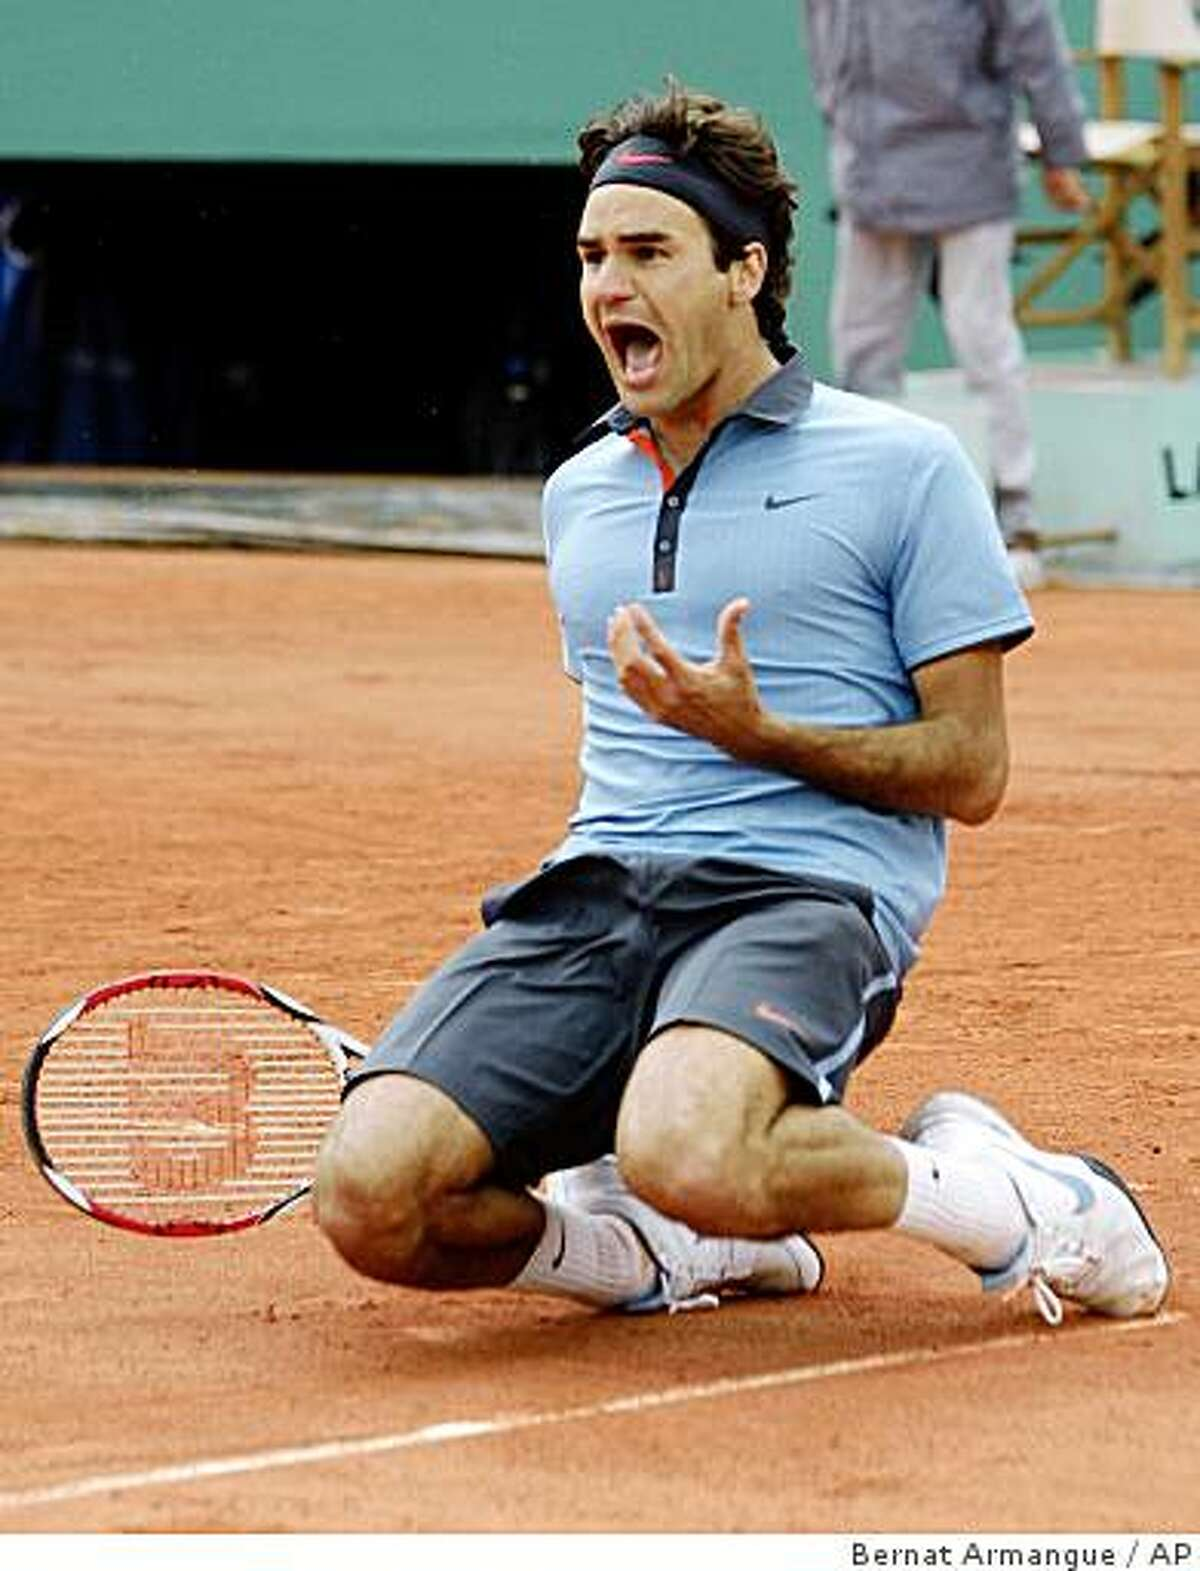 Switzerland's Roger Federer jubilates after defeating Sweden's Robin Soderling during their men's singles final match of the French Open tennis tournament at the Roland Garros stadium in Paris, Sunday June 7, 2009. The victory gives Federer 14 Grand Slams, tying his career wins to American Pete Sampras. (AP Photo/Bernat Armangue)